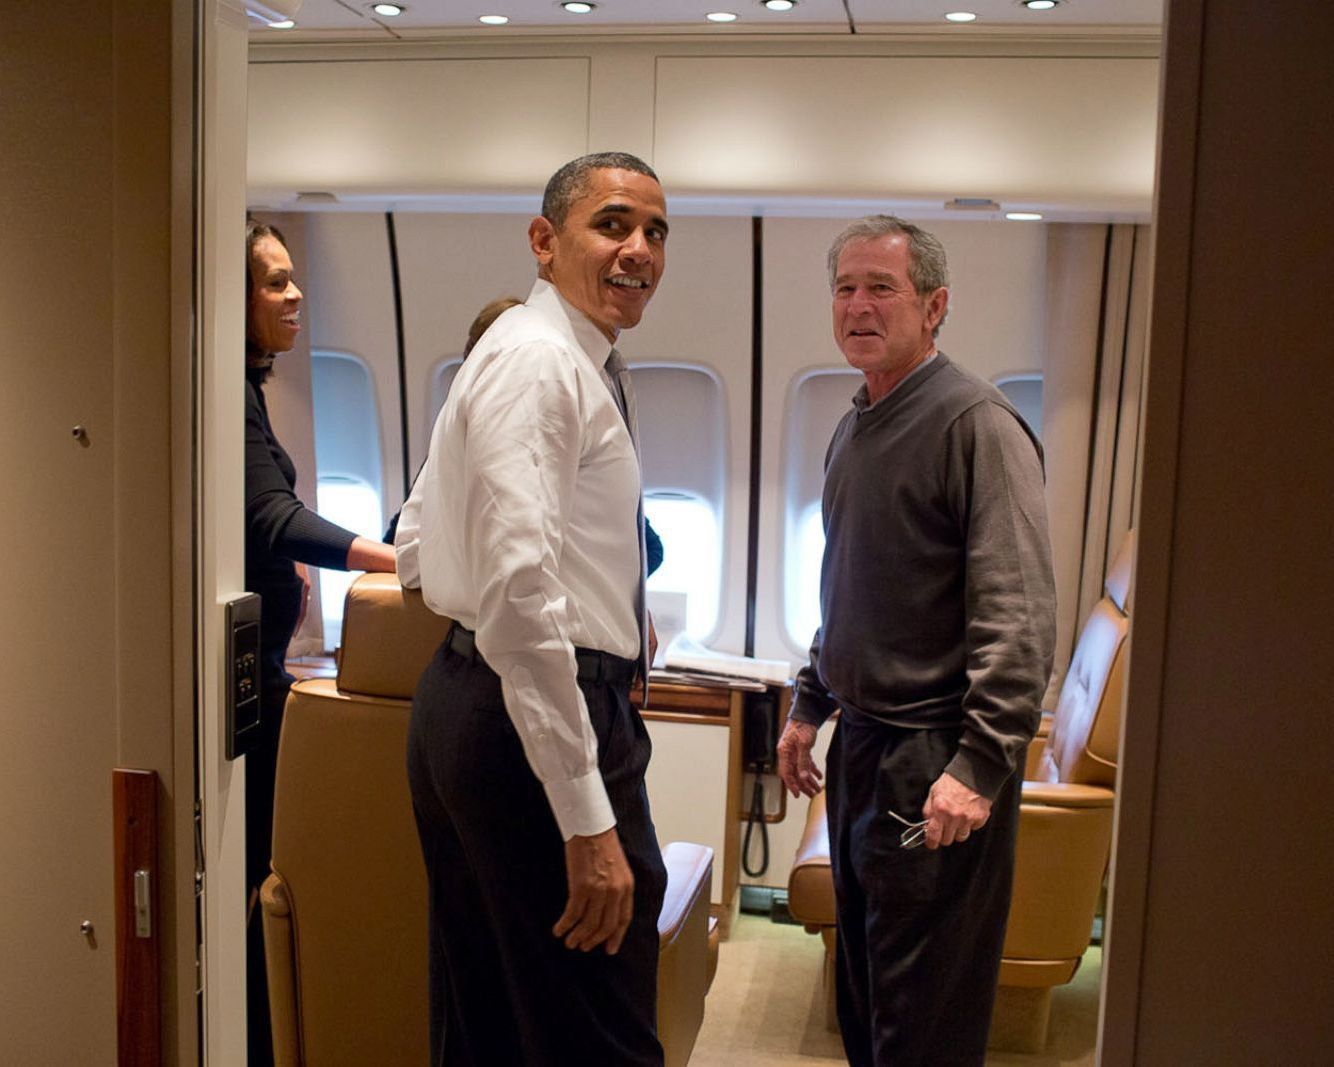 PRESIDENT BARACK OBAMA & GEORGE W. BUSH ABOARD AIR FORCE ONE 8X10 PHOTO (ZY-380)